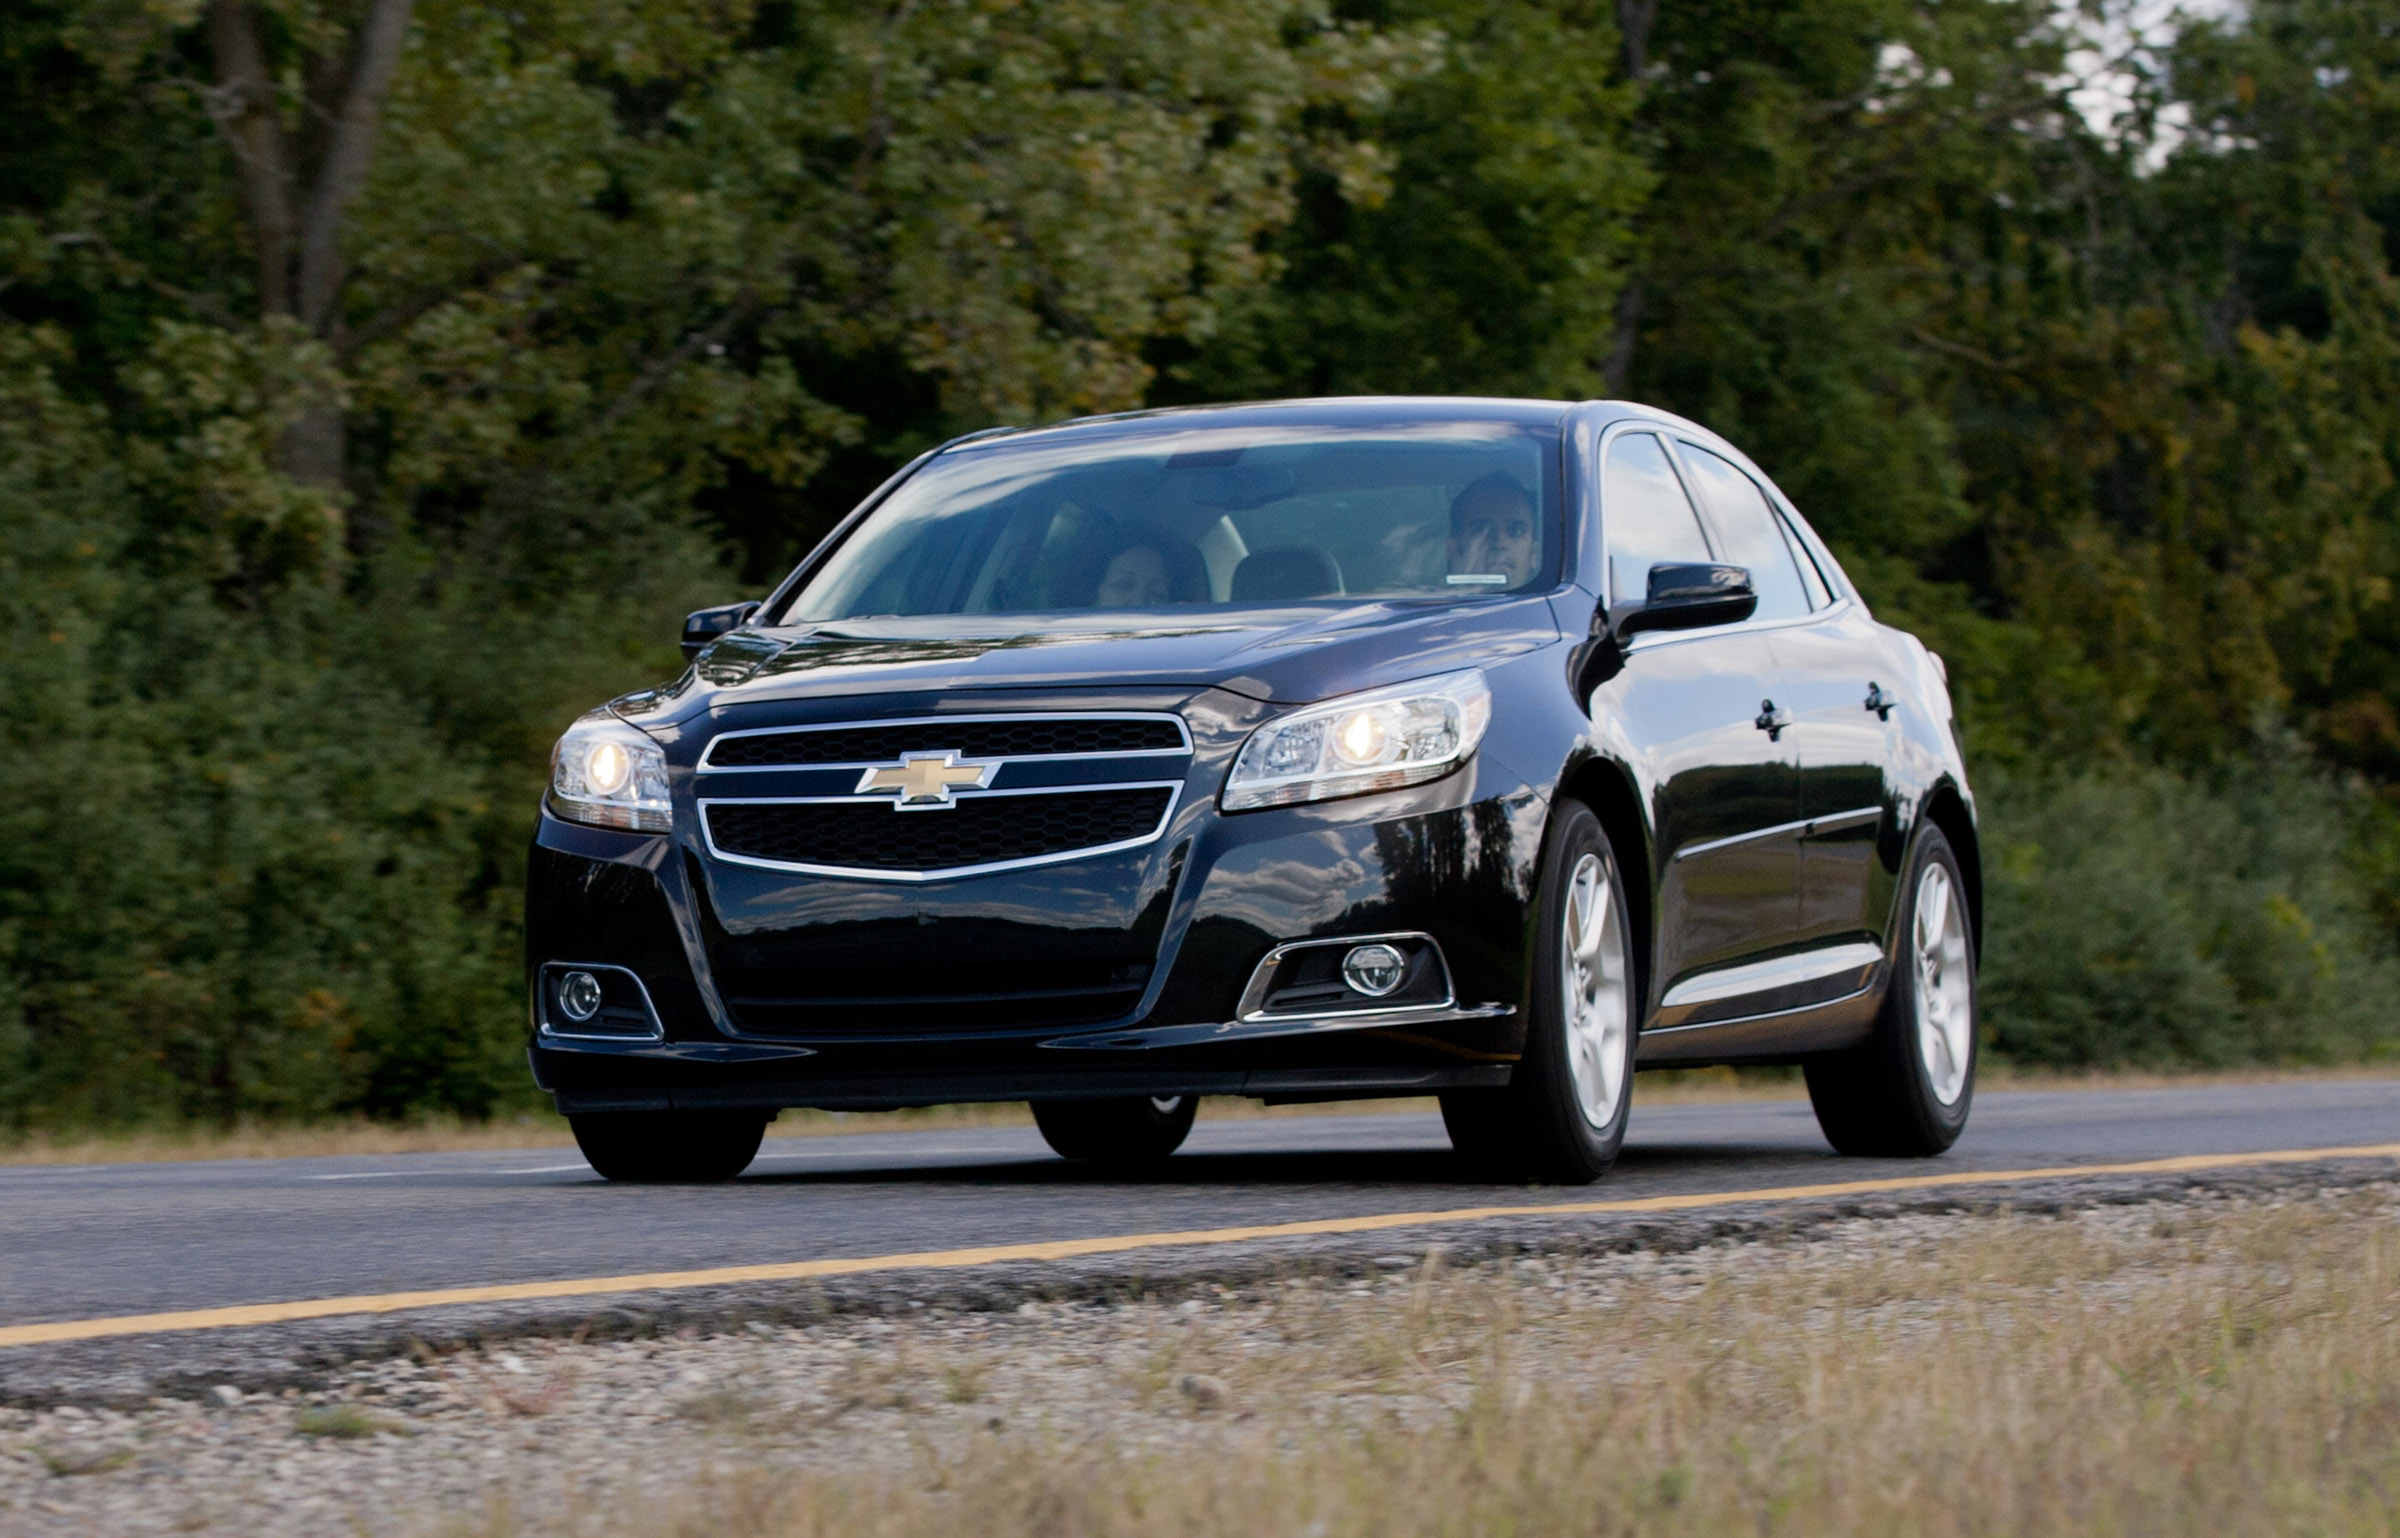 2013 chevrolet malibu eco equipped with ecotec 2 5 liter. Black Bedroom Furniture Sets. Home Design Ideas